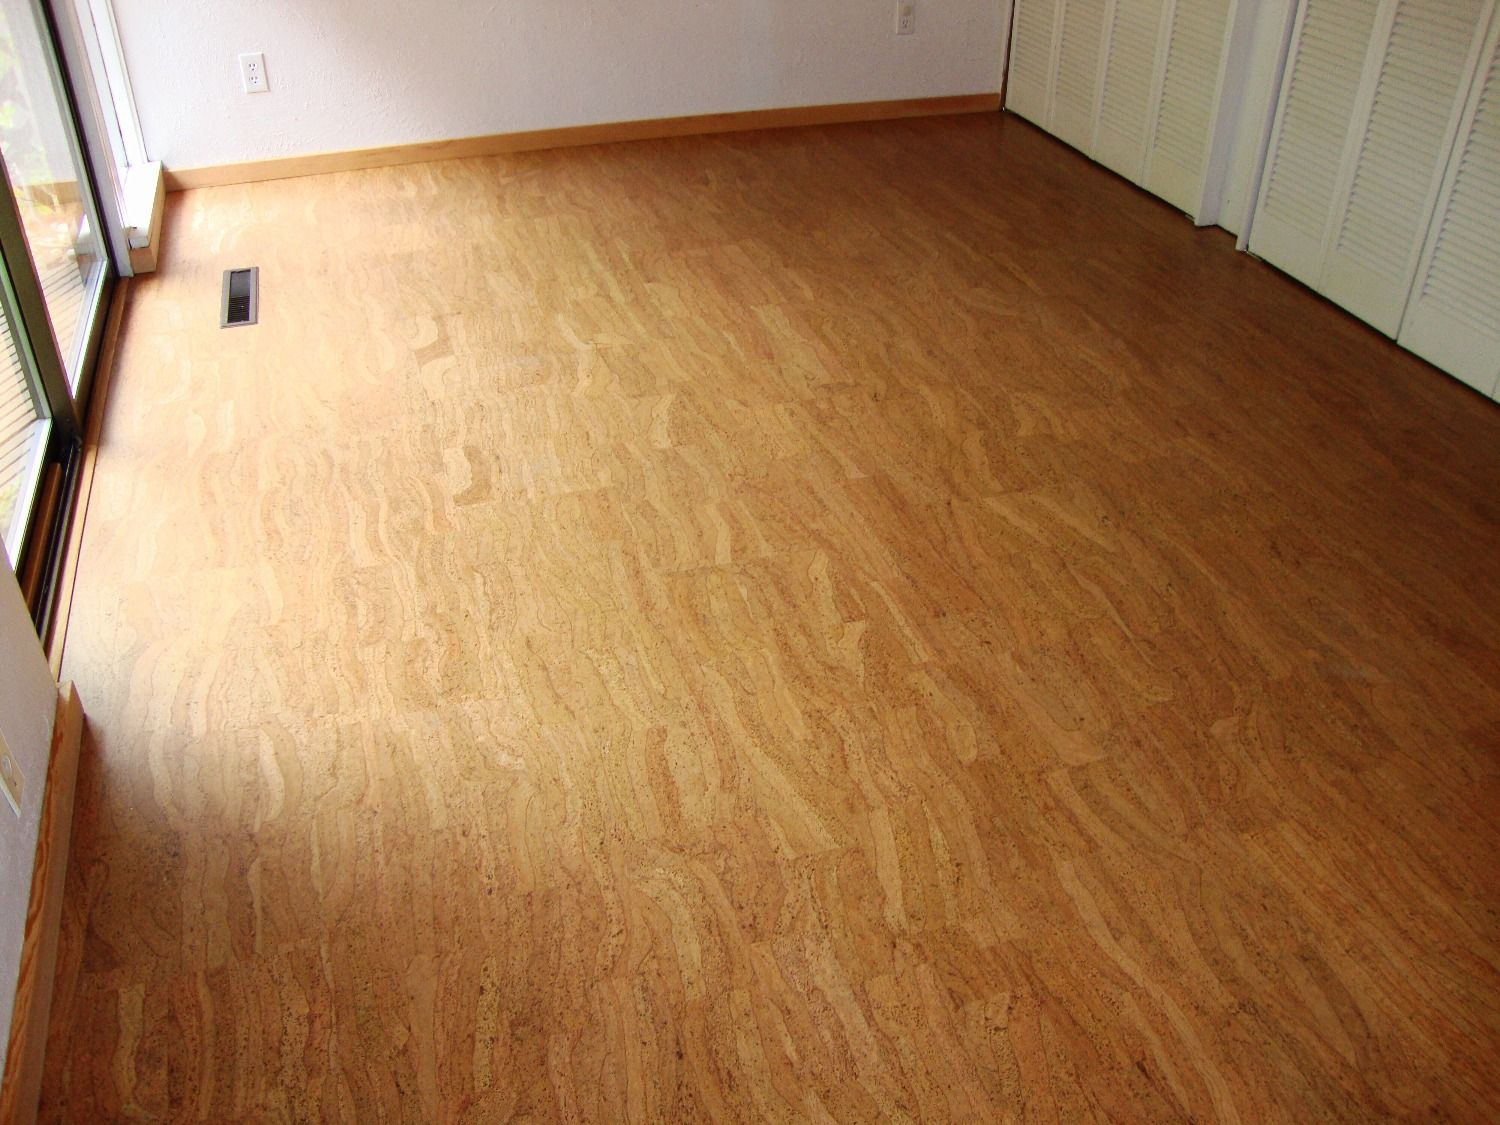 Cork Can Come In Many Interesting Colors And Patterns Interior Floor Designs Seattle Floor Design Interior Floor Floor Installation